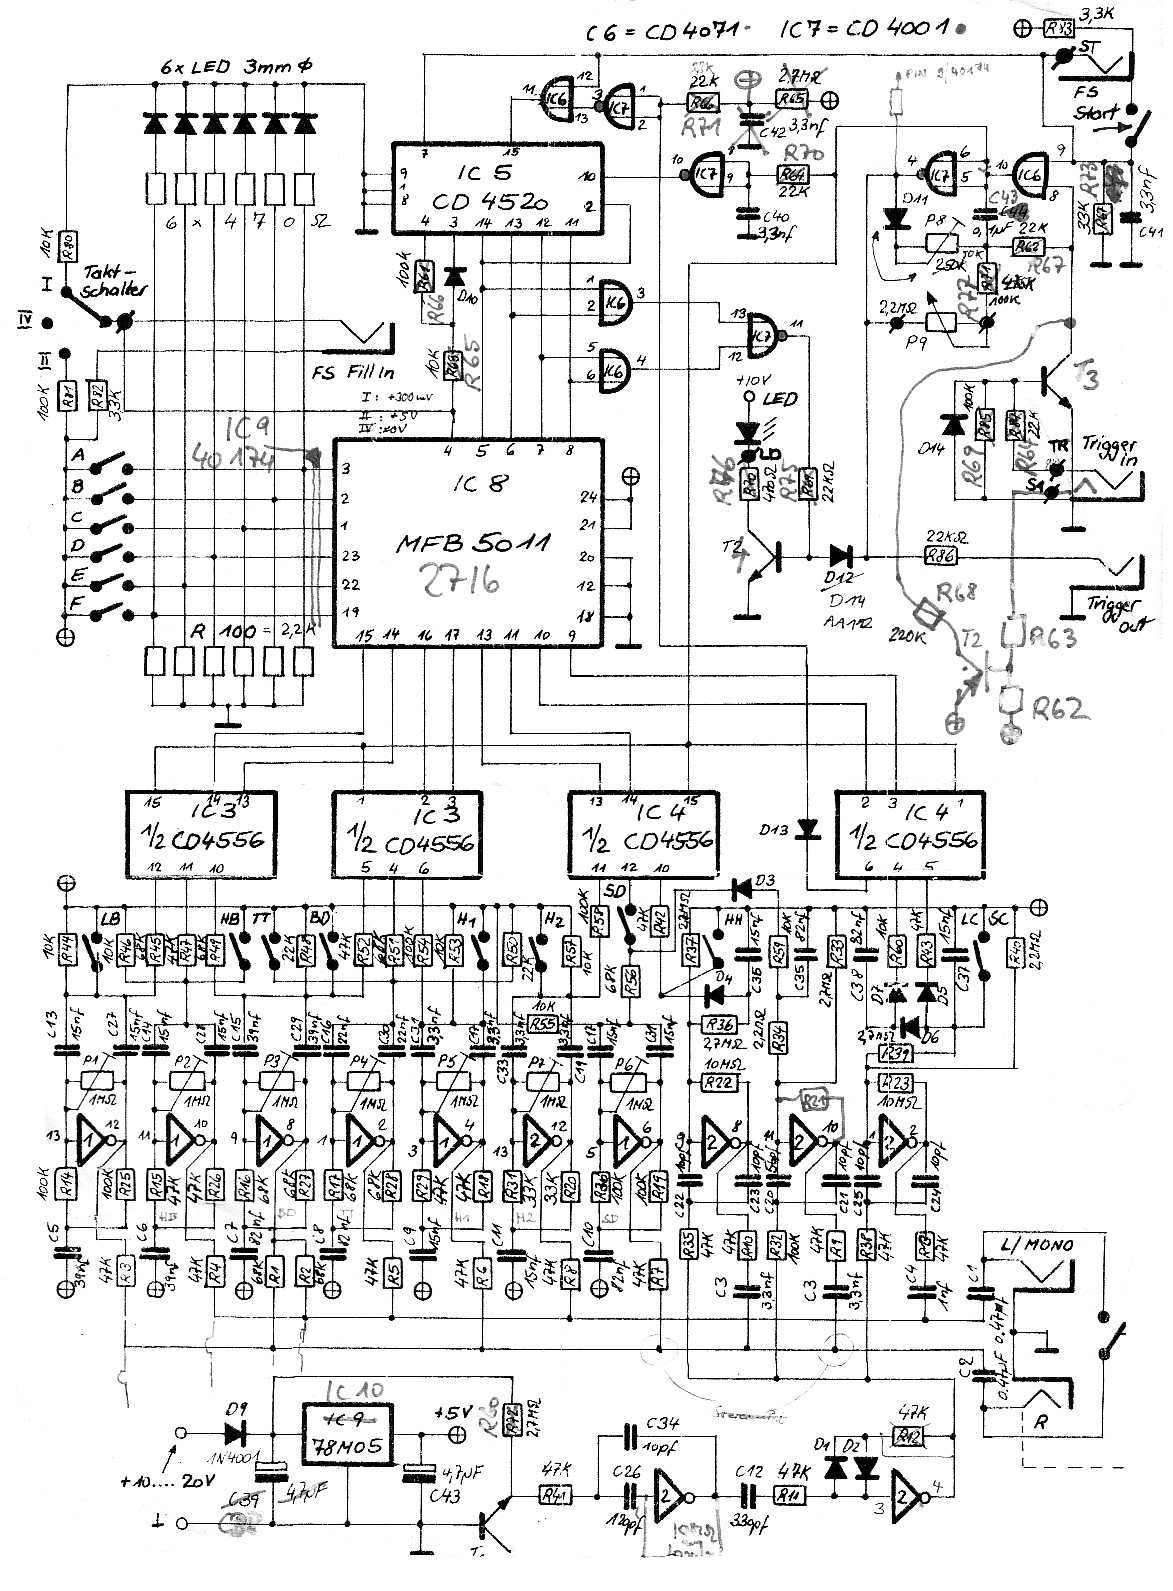 MFB 501_SCHEMATICS synthesizer service manuals free download ra-4000 installation manual at creativeand.co